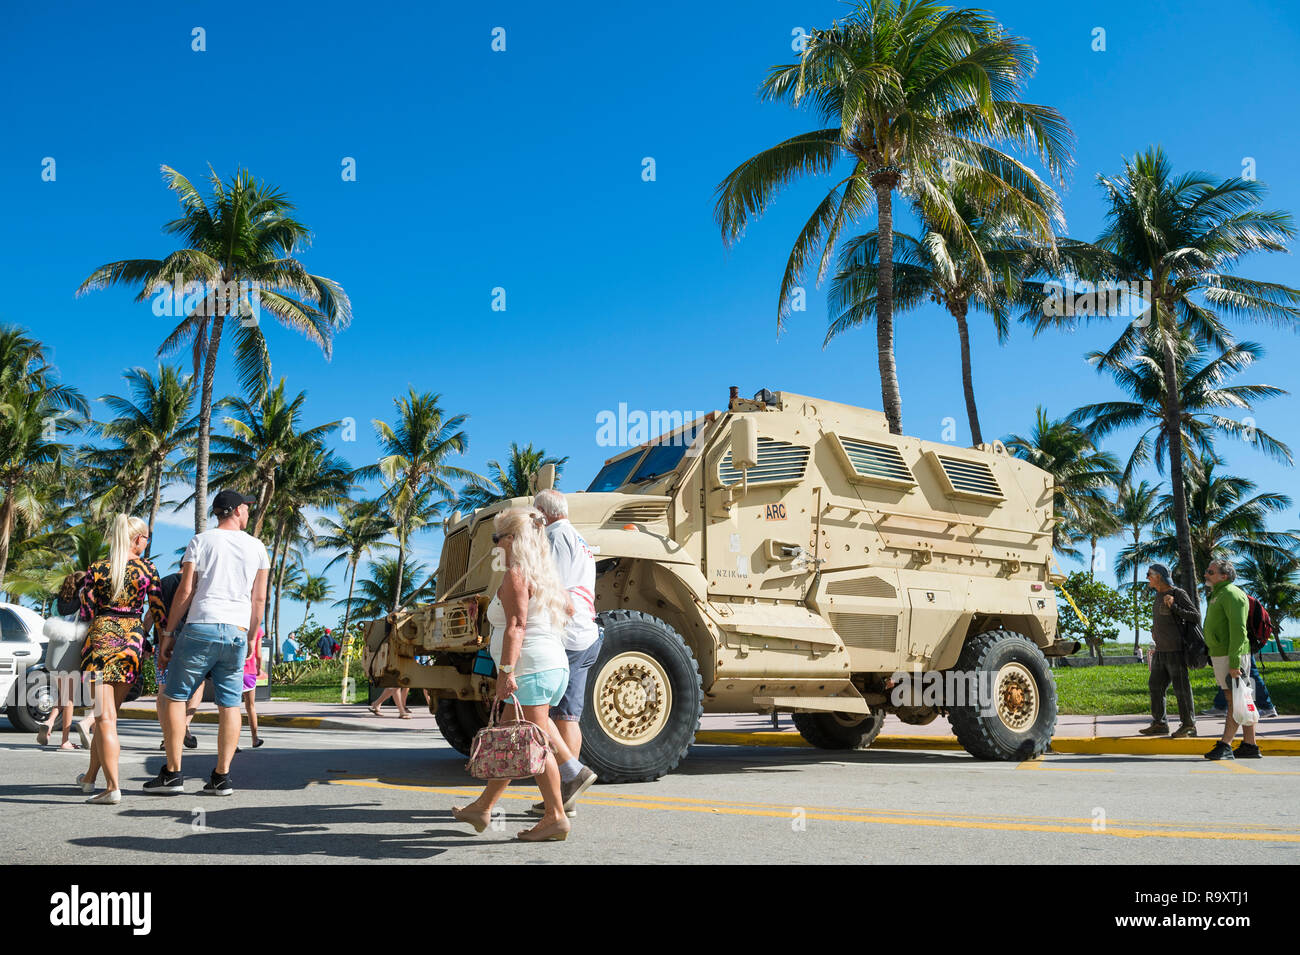 MIAMI - CIRCA DECEMBER, 2017: A military armored vehicle stands guard at Ocean Drive protecting crowds of pedestrians gathered for the holidays. - Stock Image